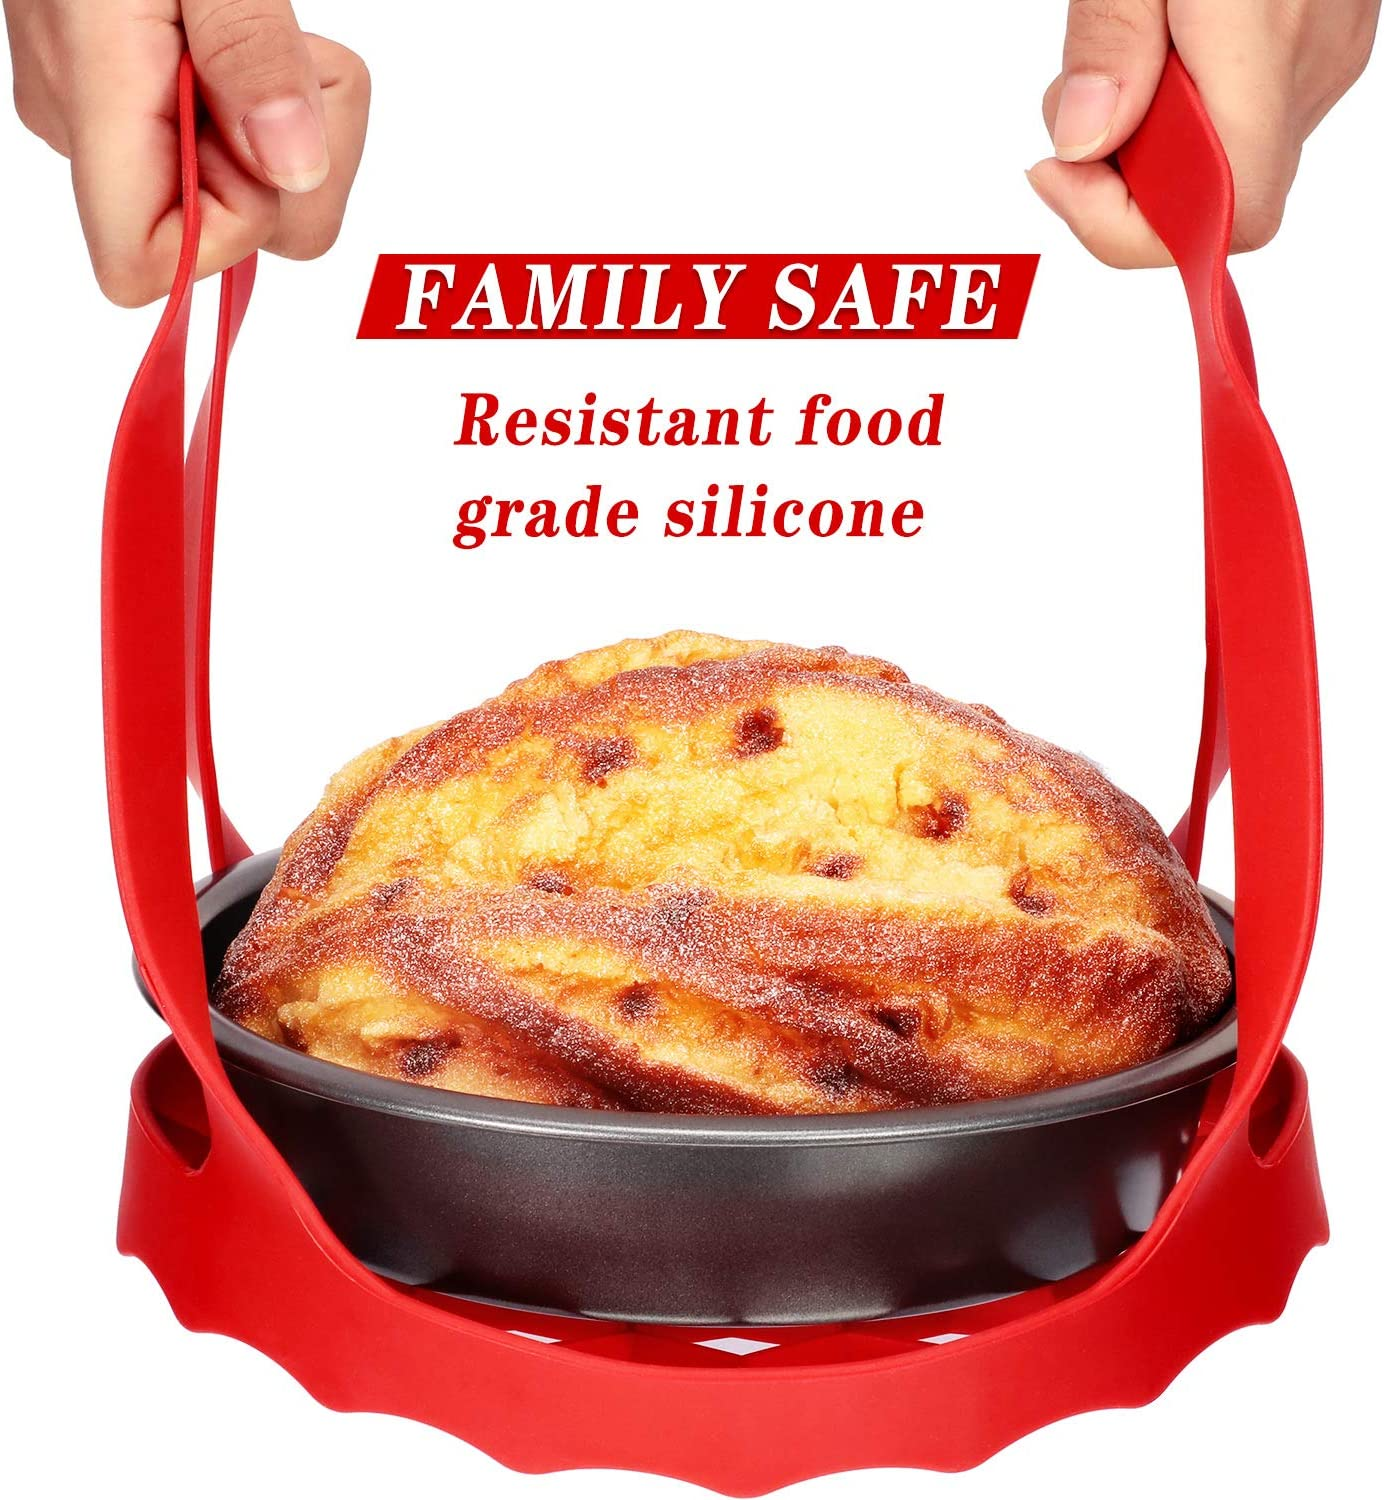 Silicone Pressure Cooker Sling Egg Bakeware Lifter and Egg Bites Mold Egg Bite Pan with Lid Compatible with Most Multi-Function Cookers